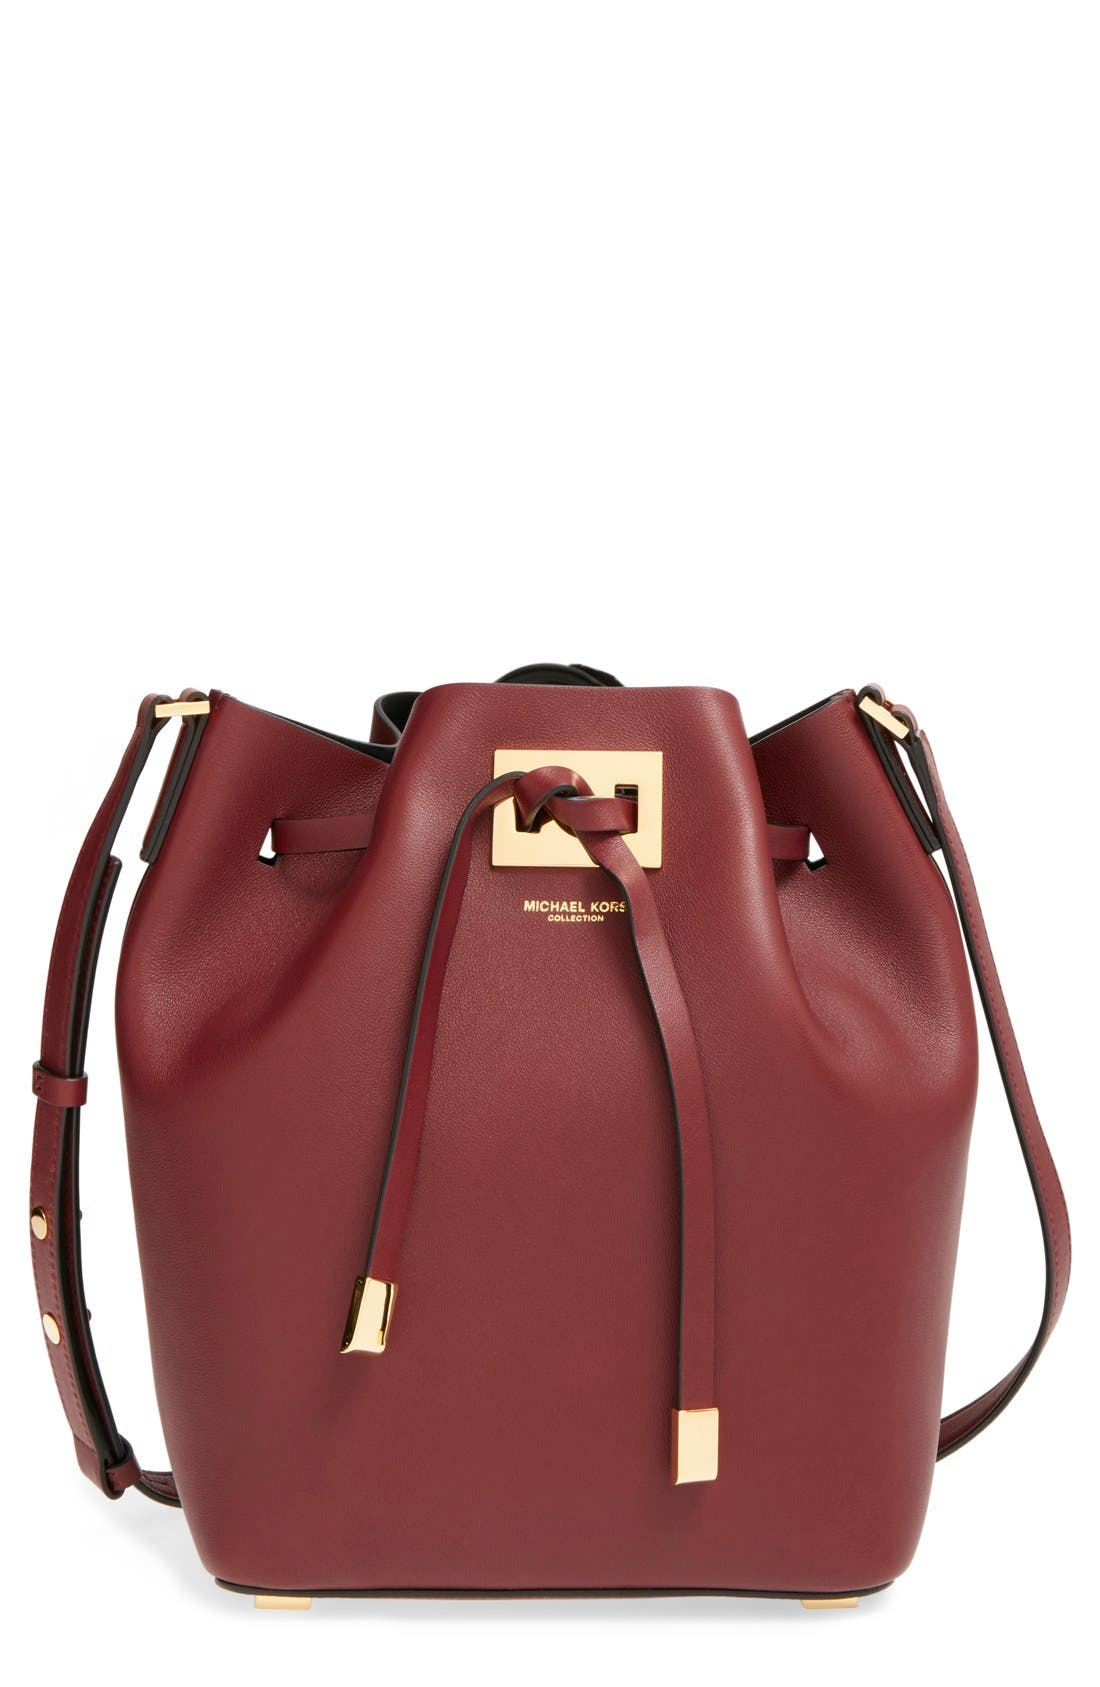 Main Image - Michael Kors 'Medium Miranda' Bucket Bag